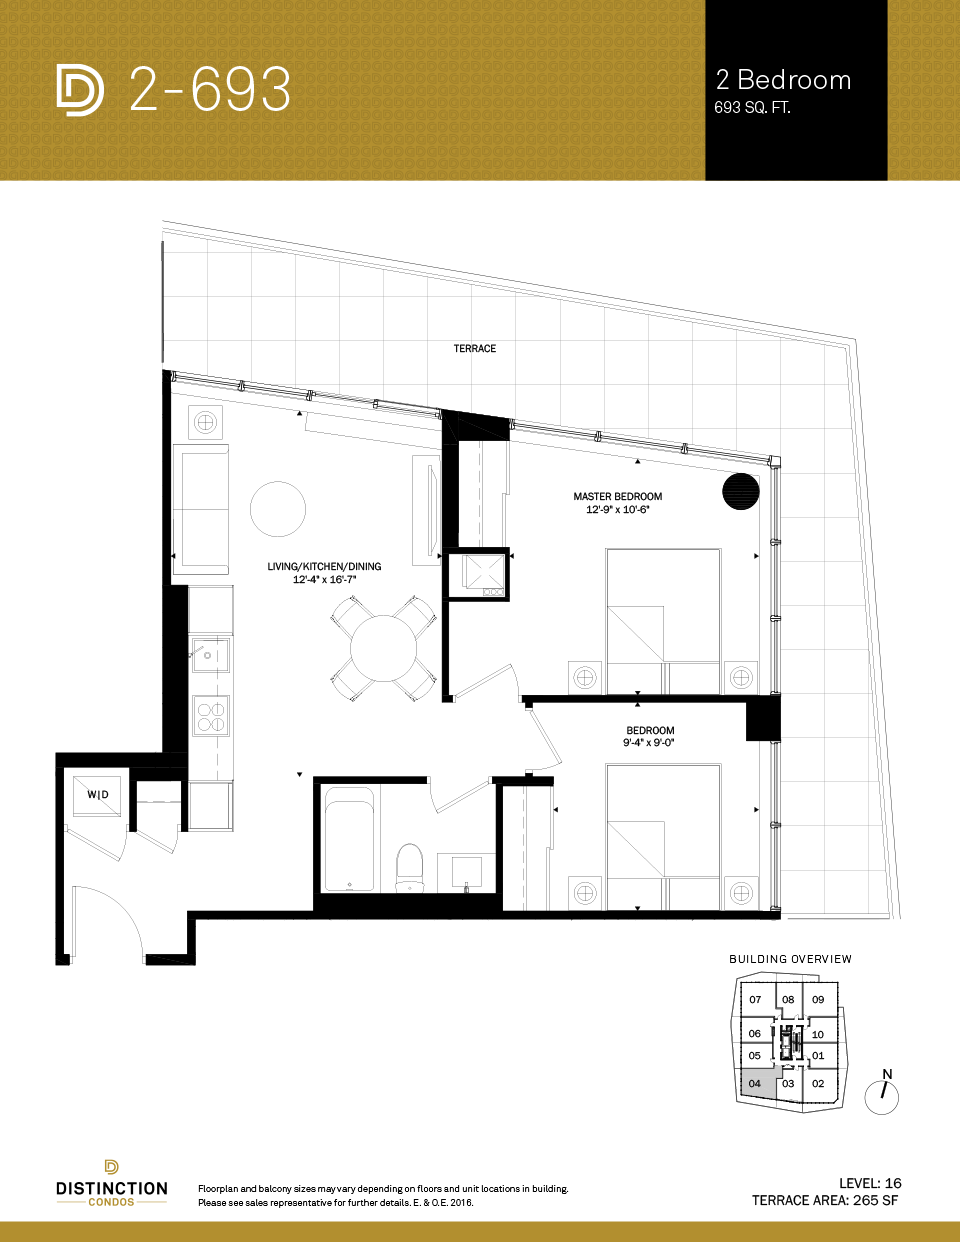 distinction condos floorplan 2-693